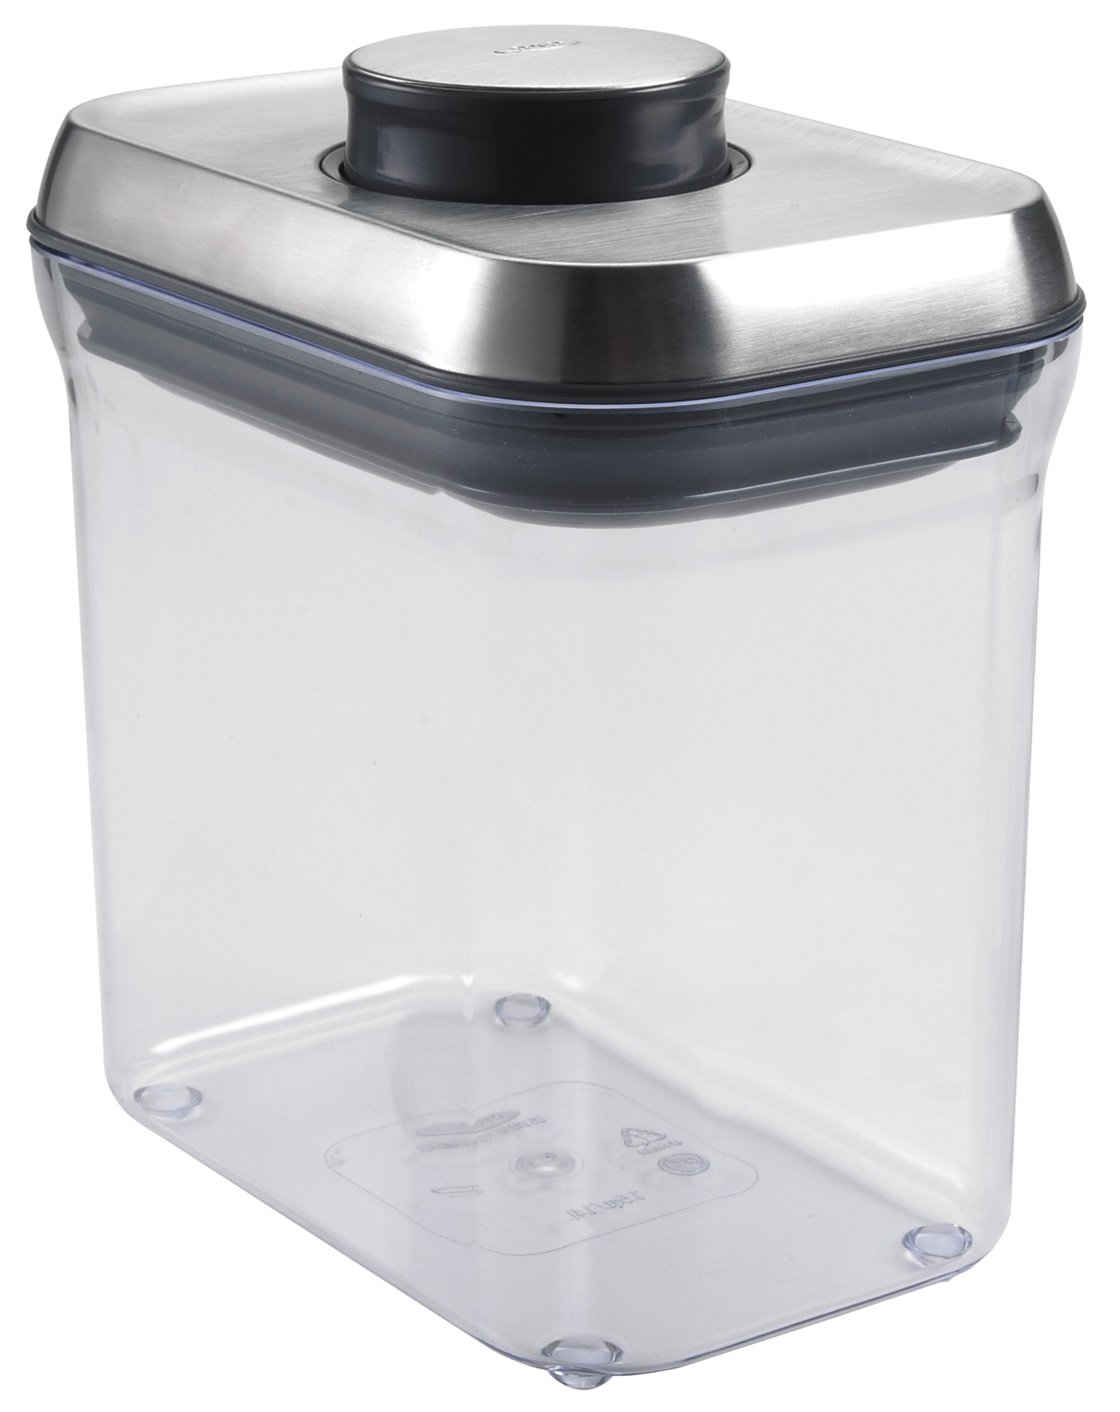 OXO SteeL POP Container – Airtight Food Storage – 1.5 Qt for Snacks and More